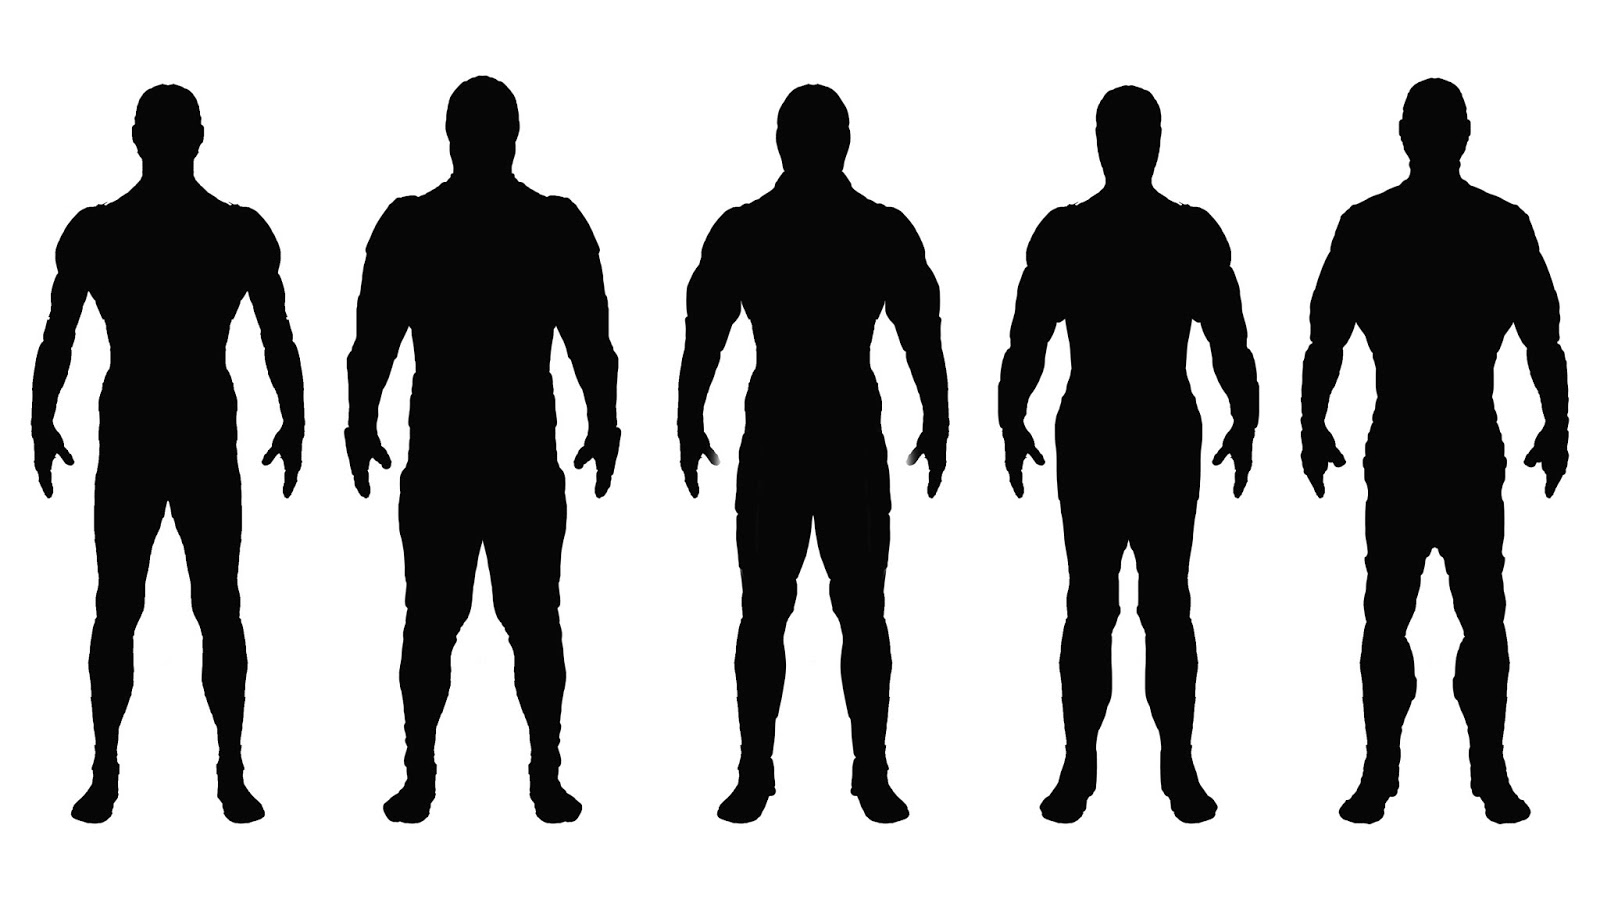 Outline Standing Human - ClipArt Best